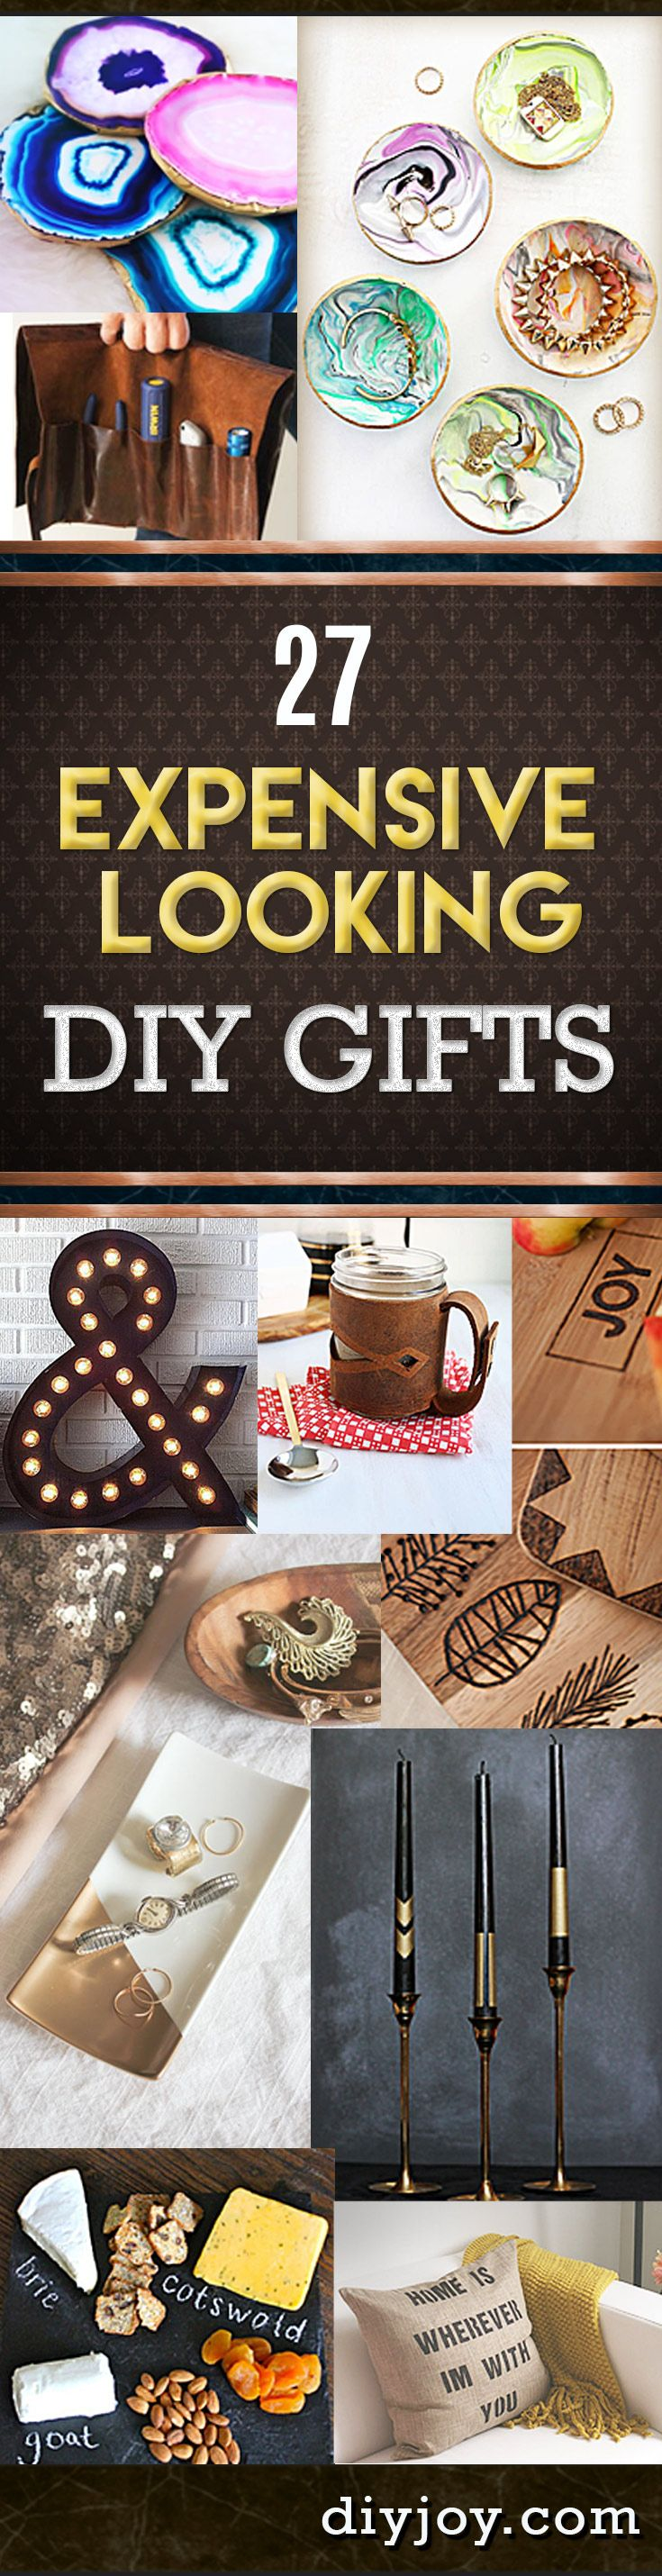 27 expensive looking inexpensive diy gifts diy christmas 27 expensive looking inexpensive diy gifts solutioingenieria Image collections